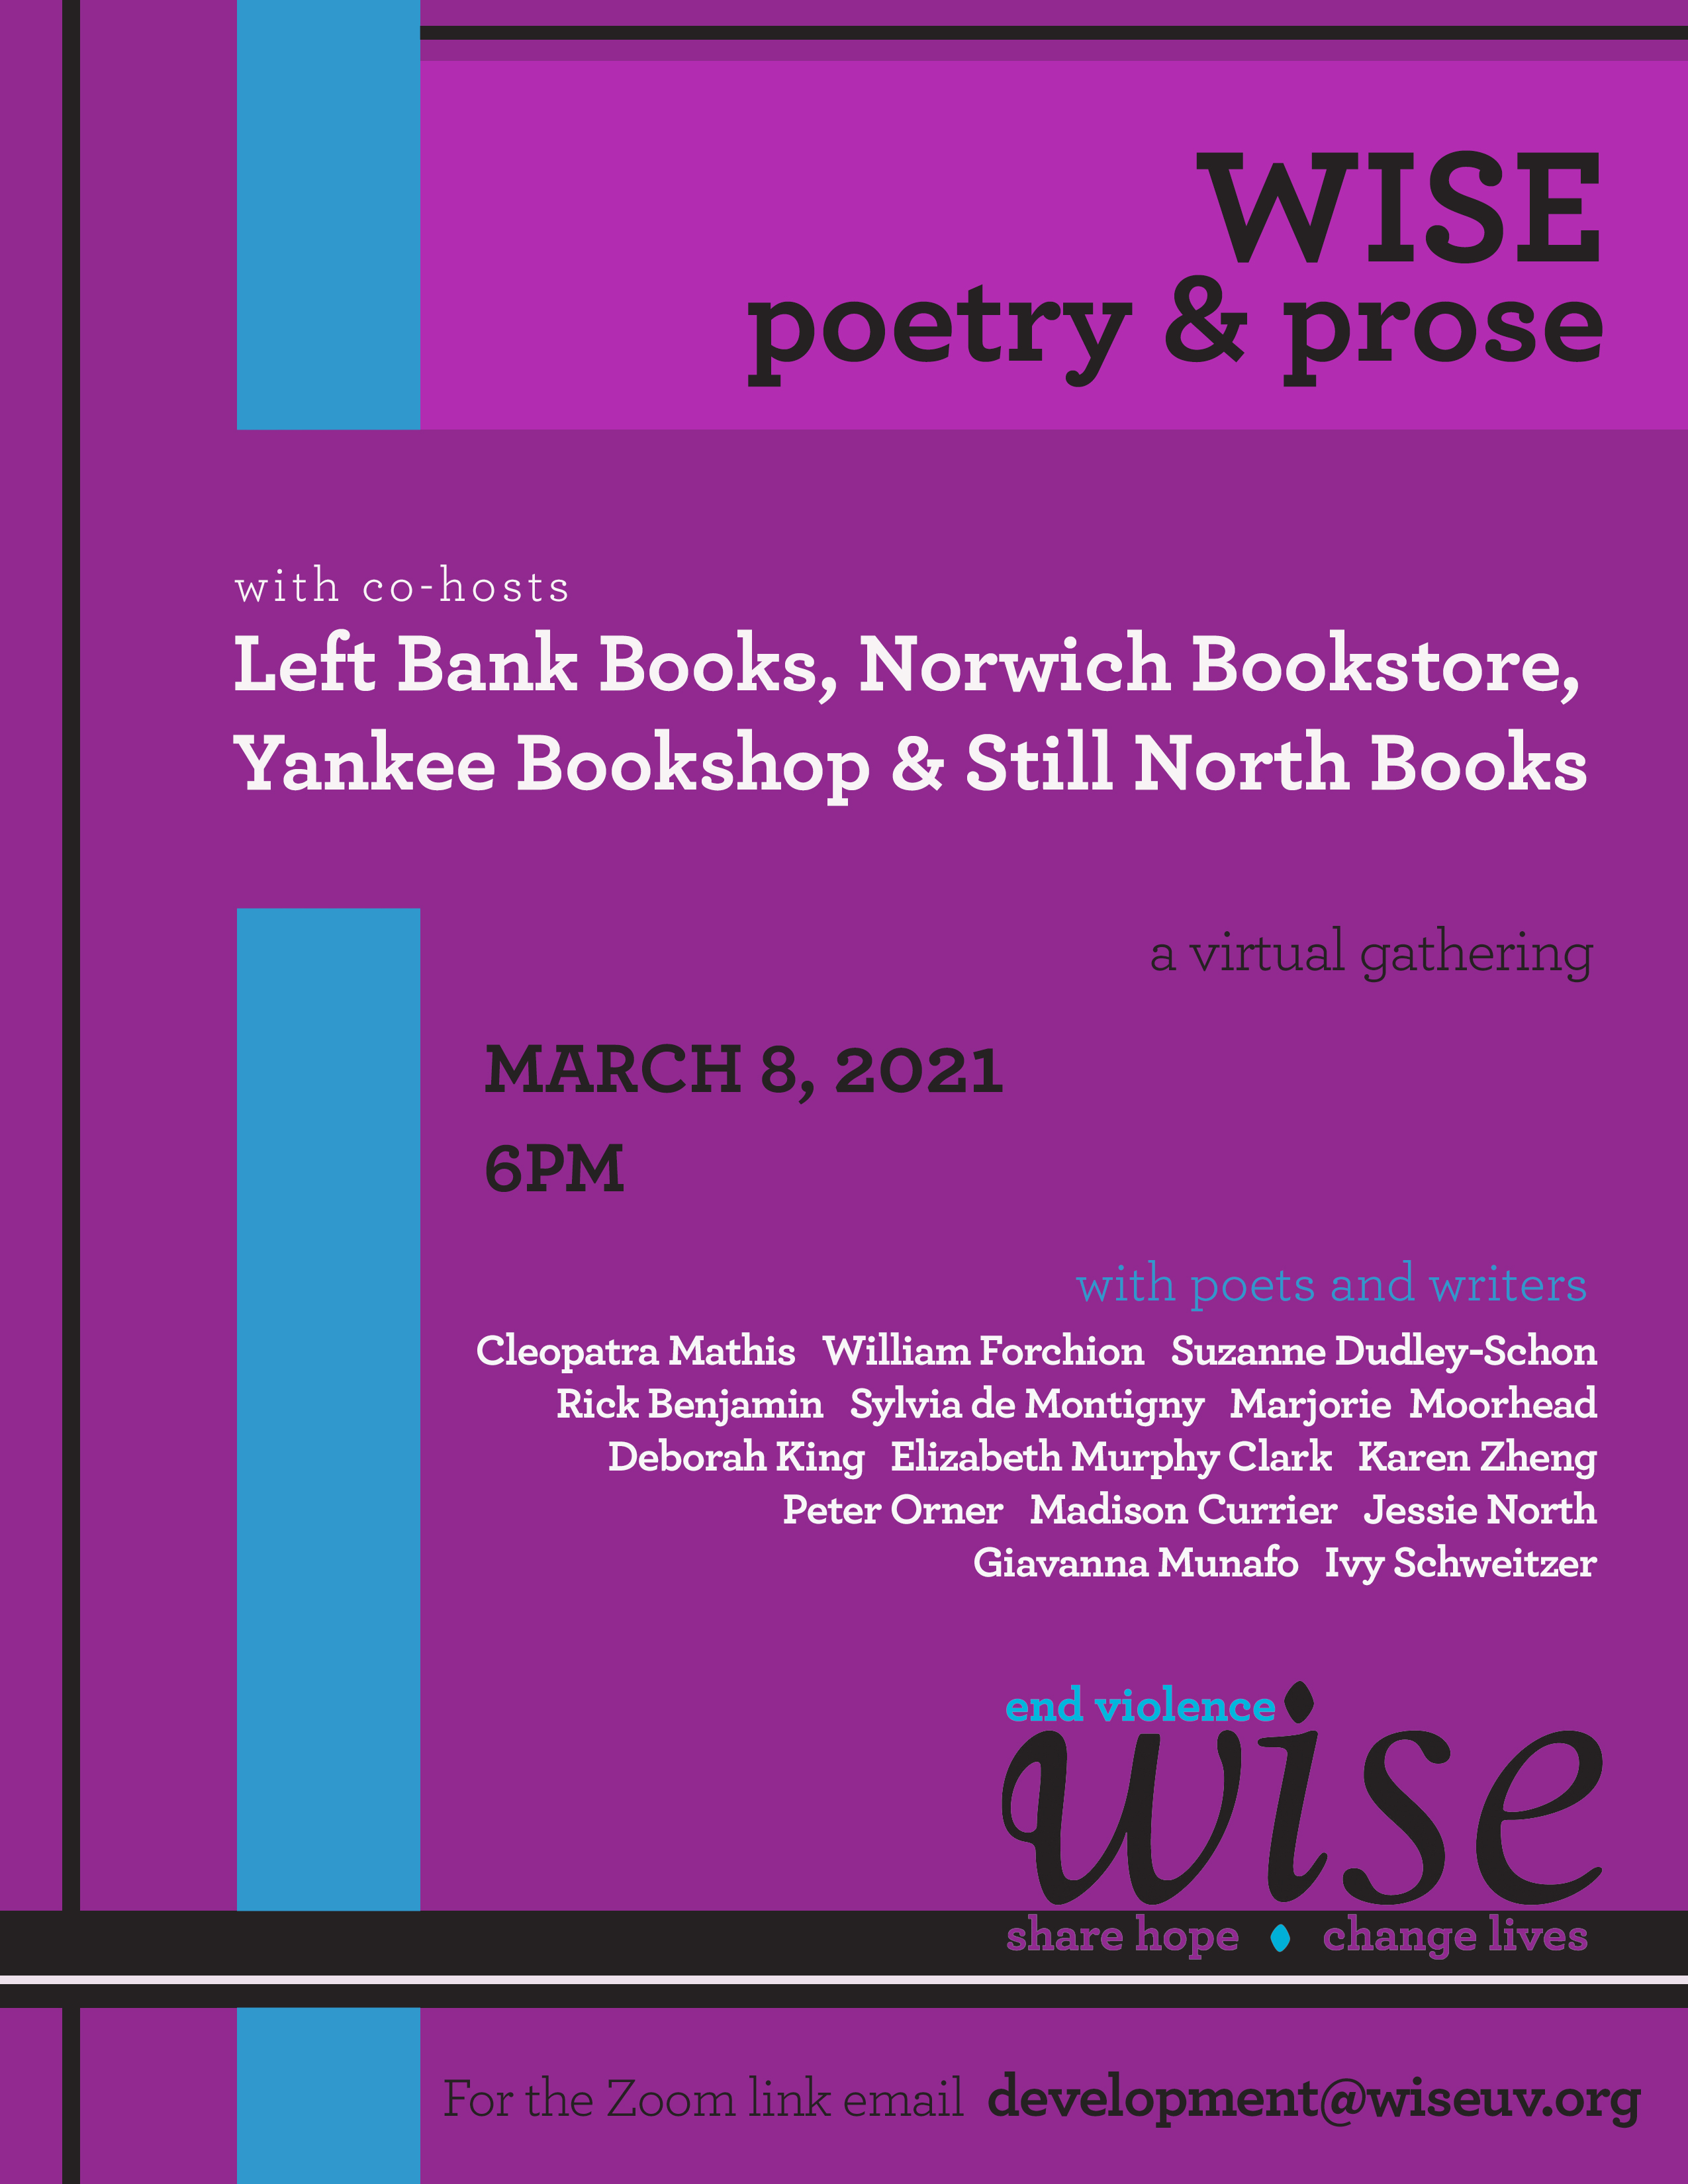 WISE poetry & prose, sponsored by four independent bookstores, Monday 3/8 at 6pm, list of participating authors